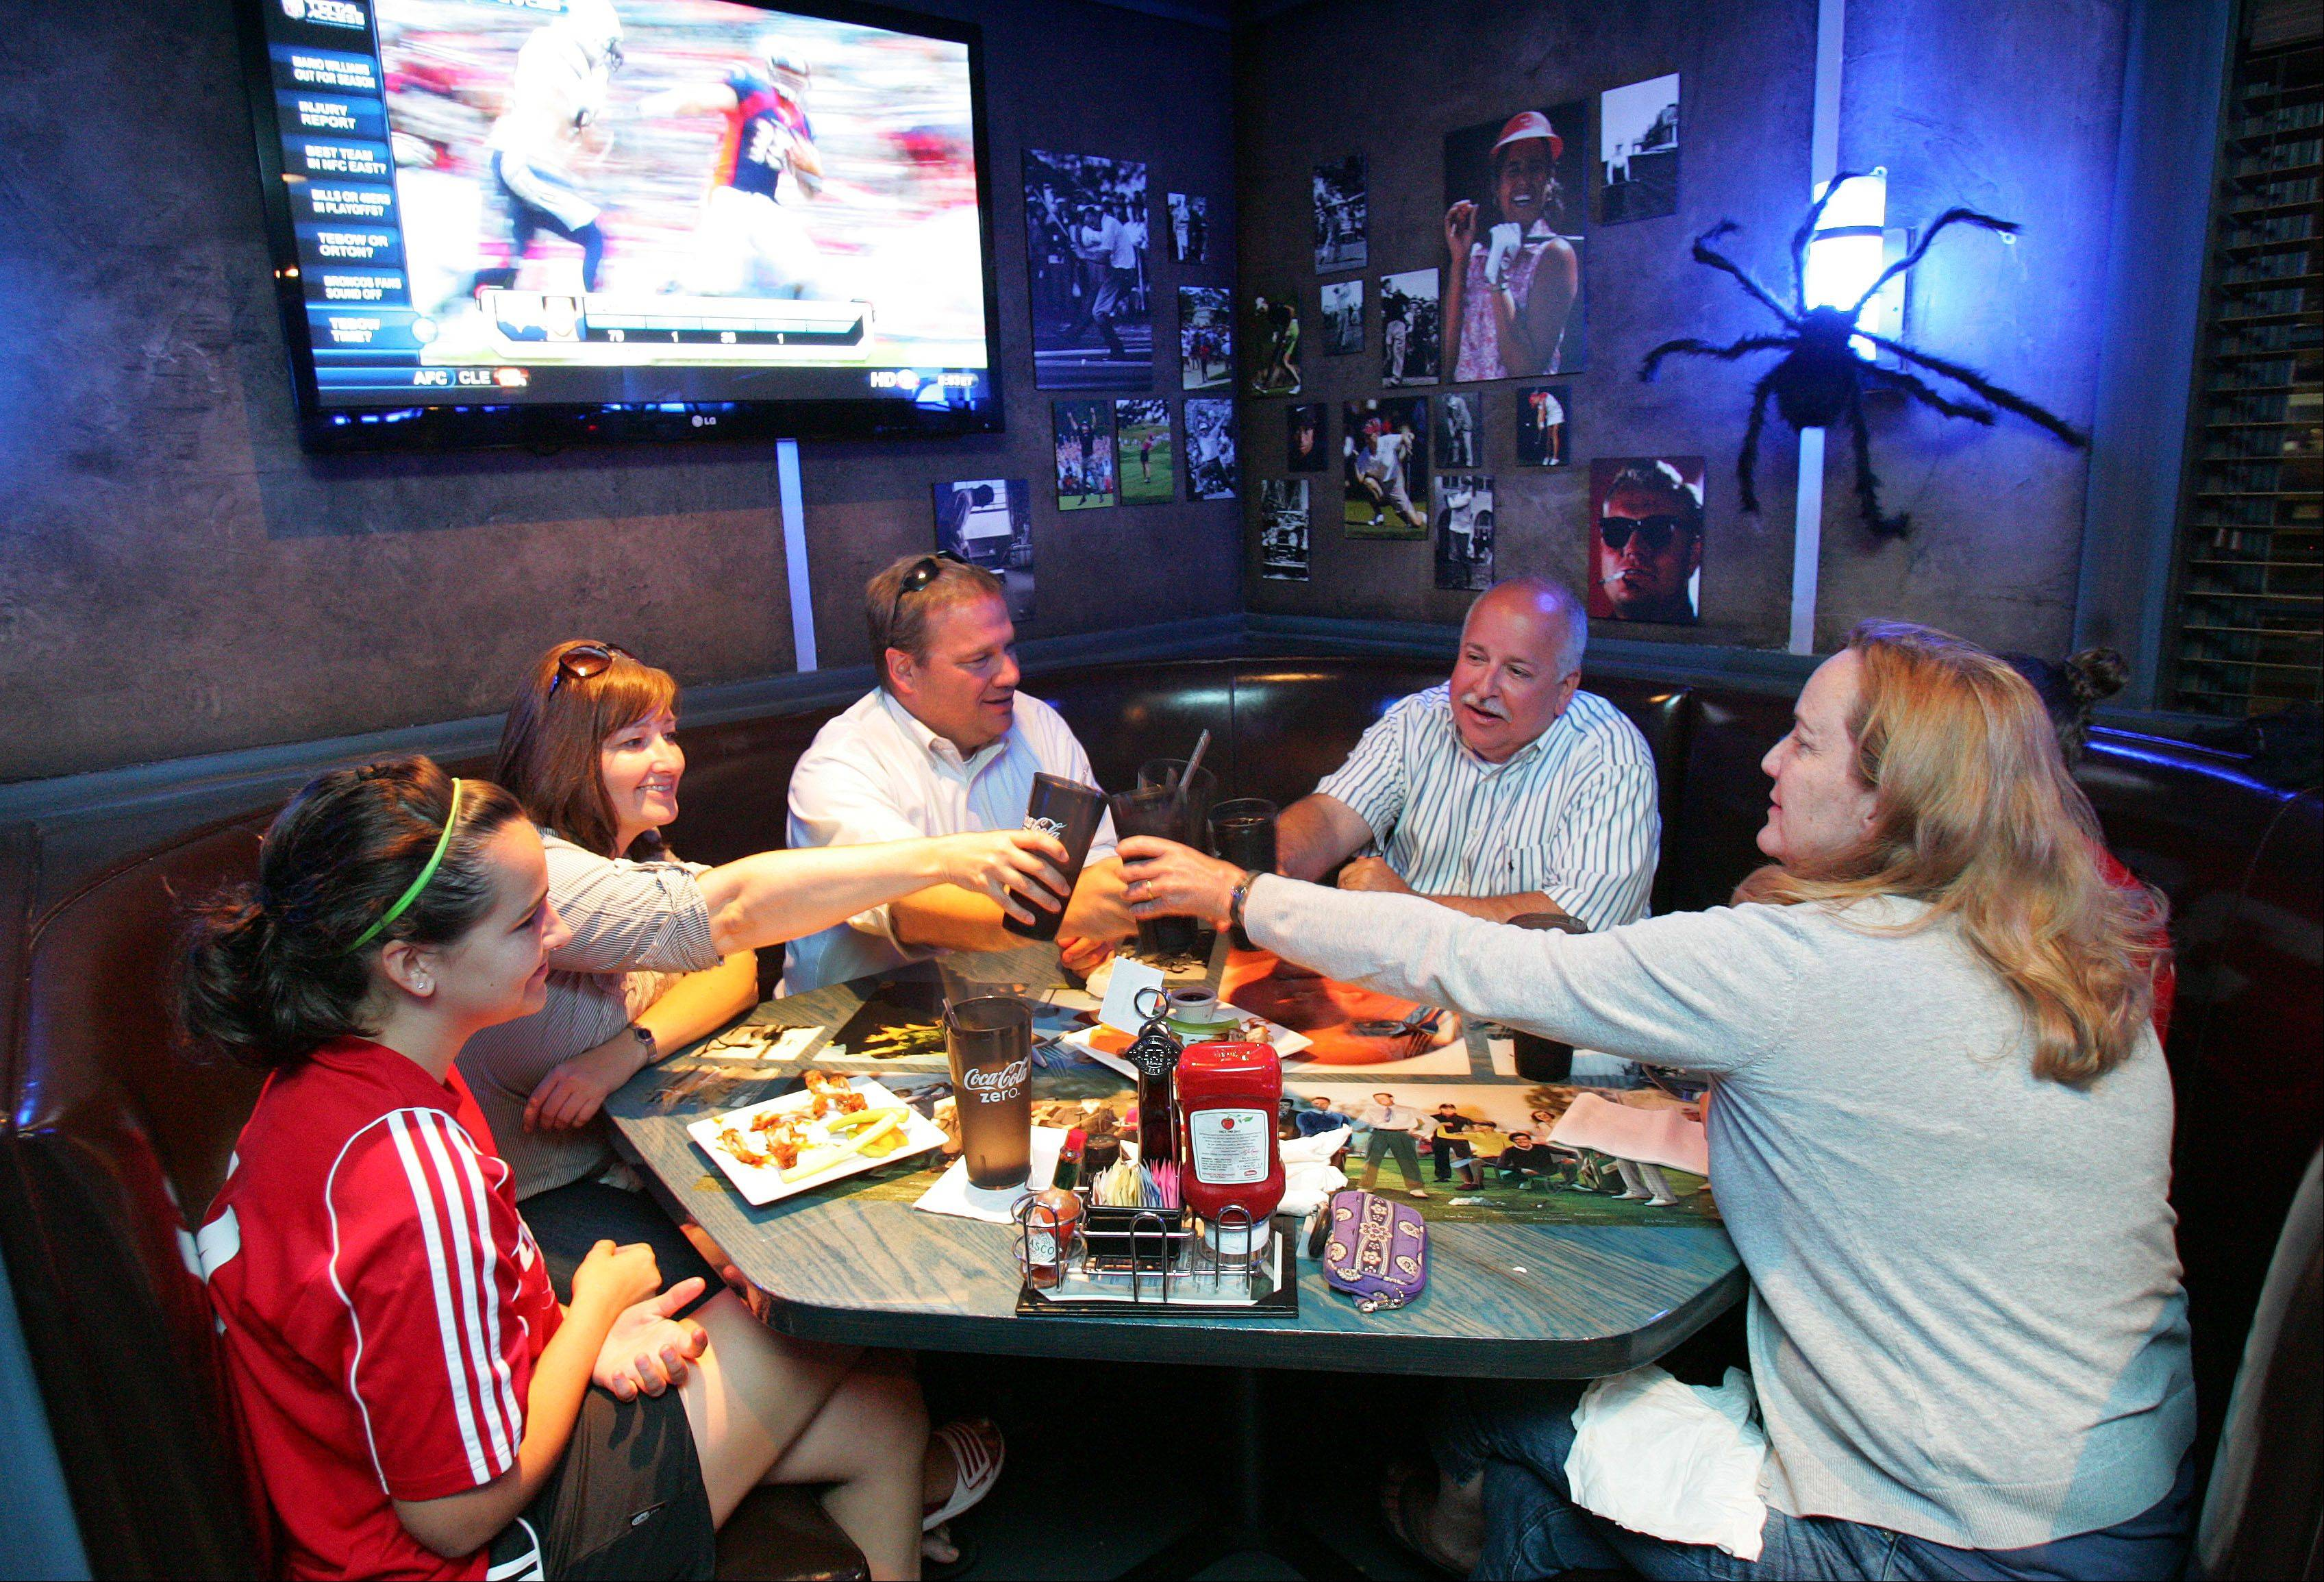 The Petrich and Cain families grab dinner at Blue 60 sports bar in Mundelein.